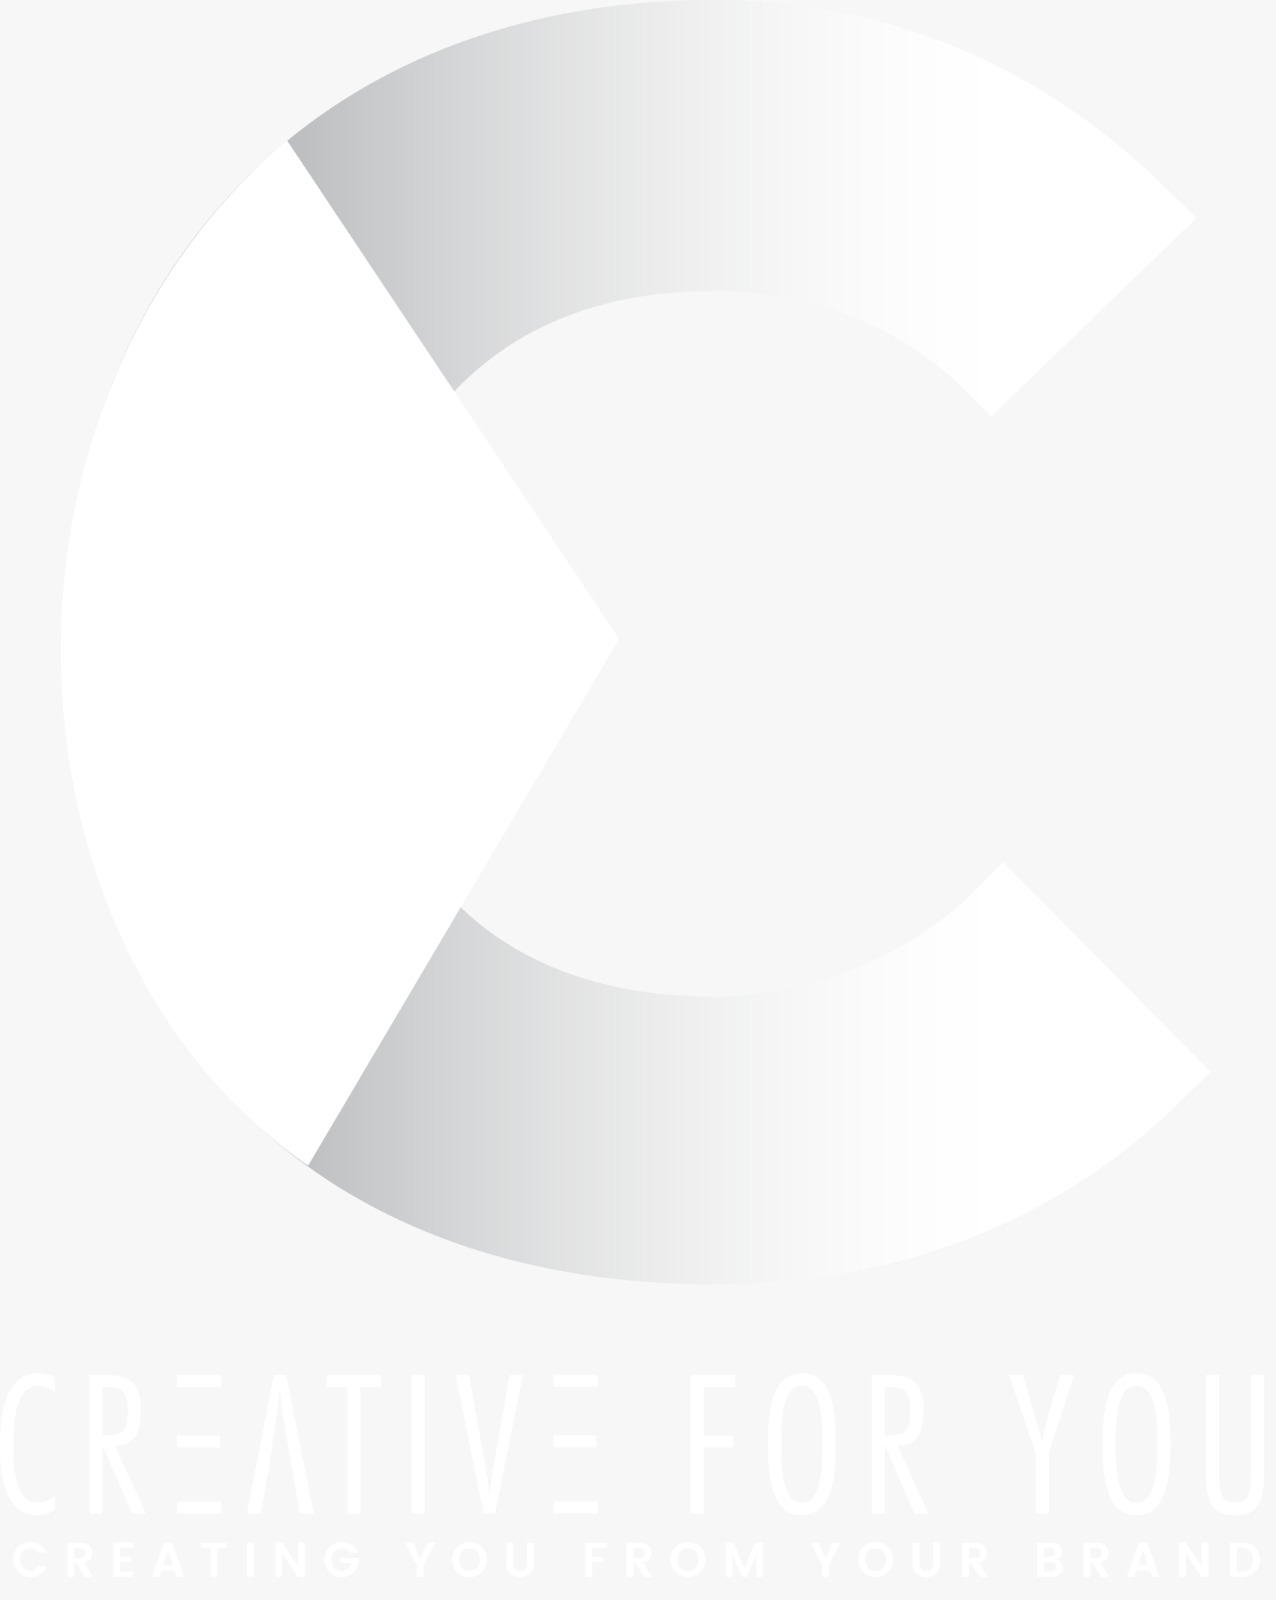 Creative for you Production